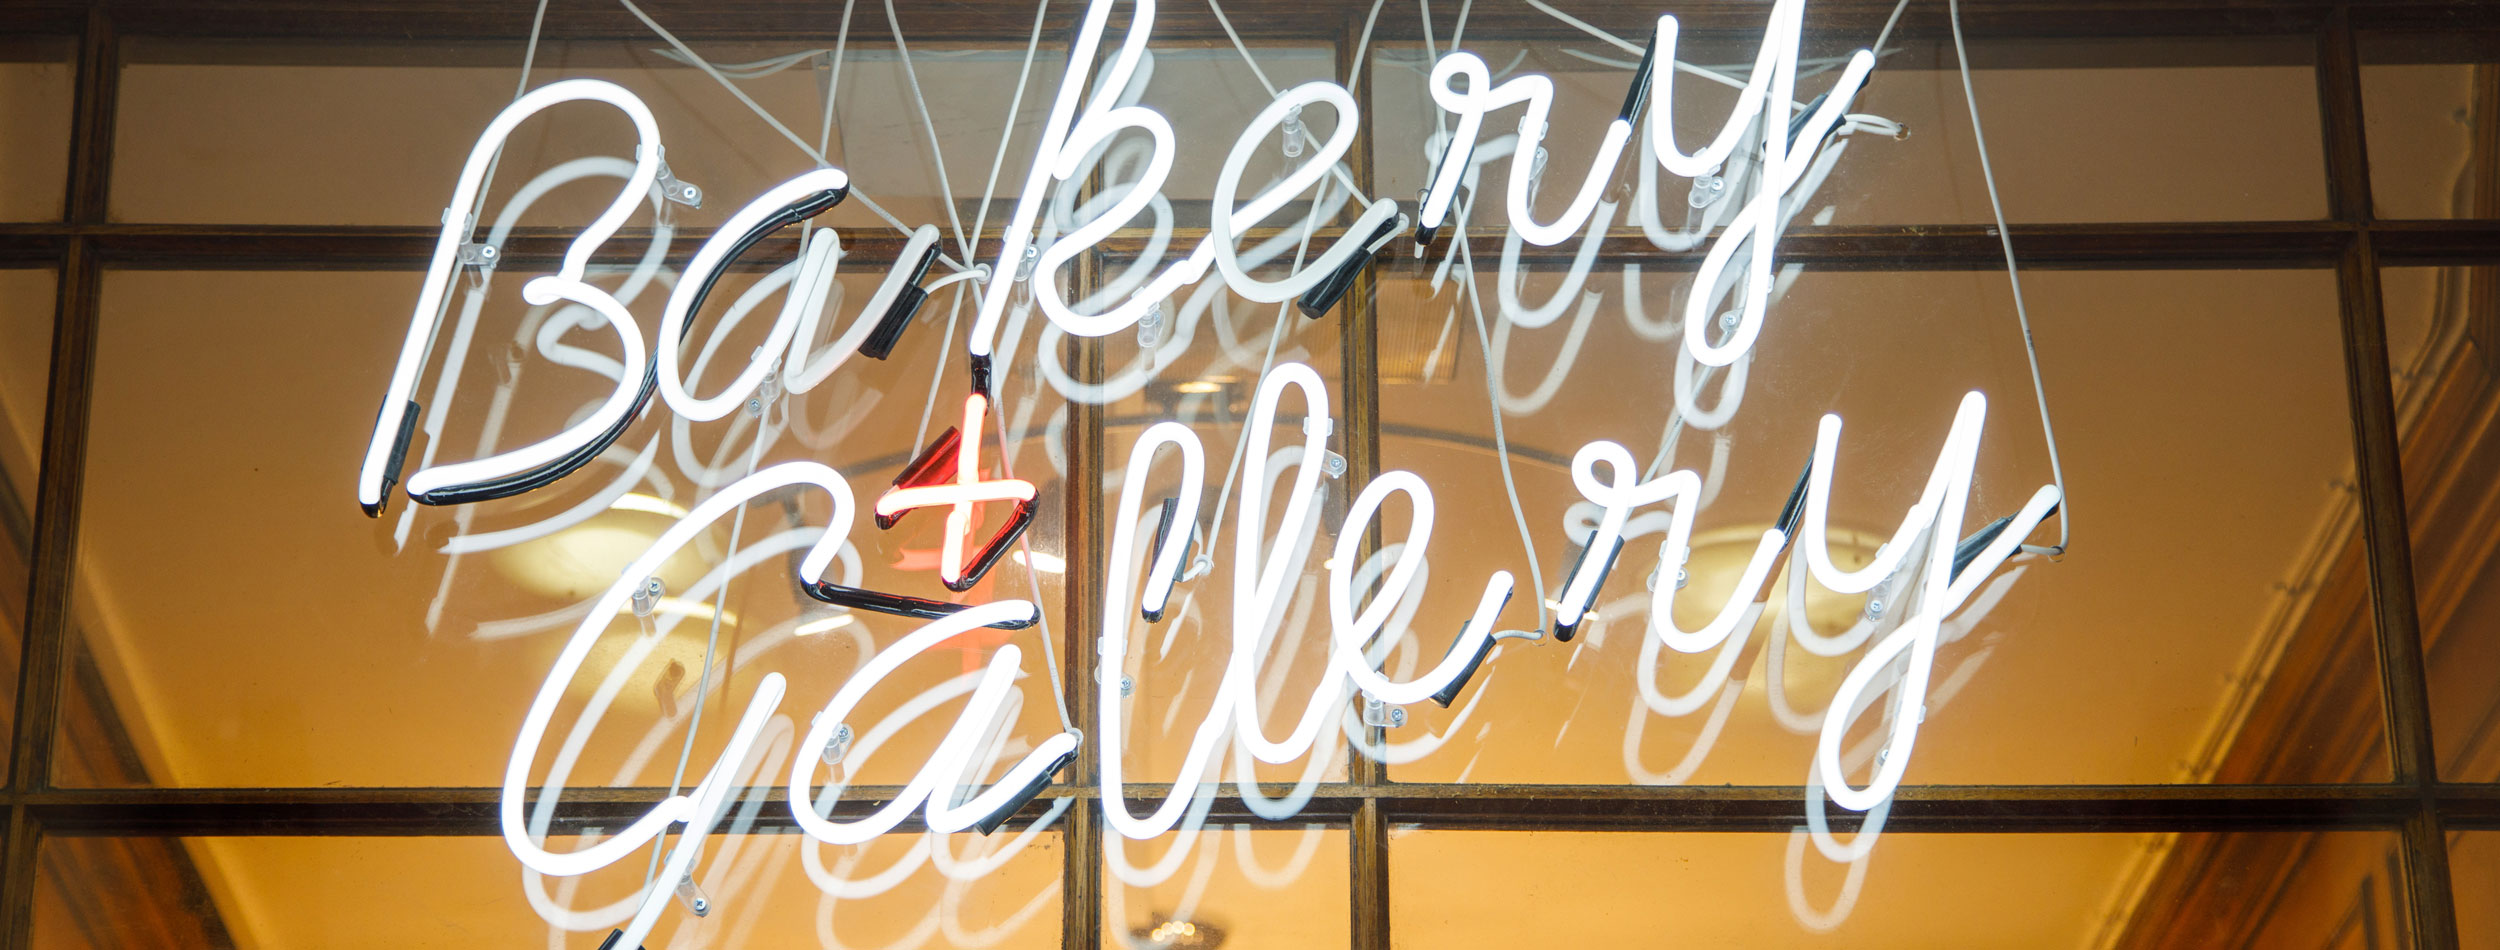 Bakery and Gallery neon sign